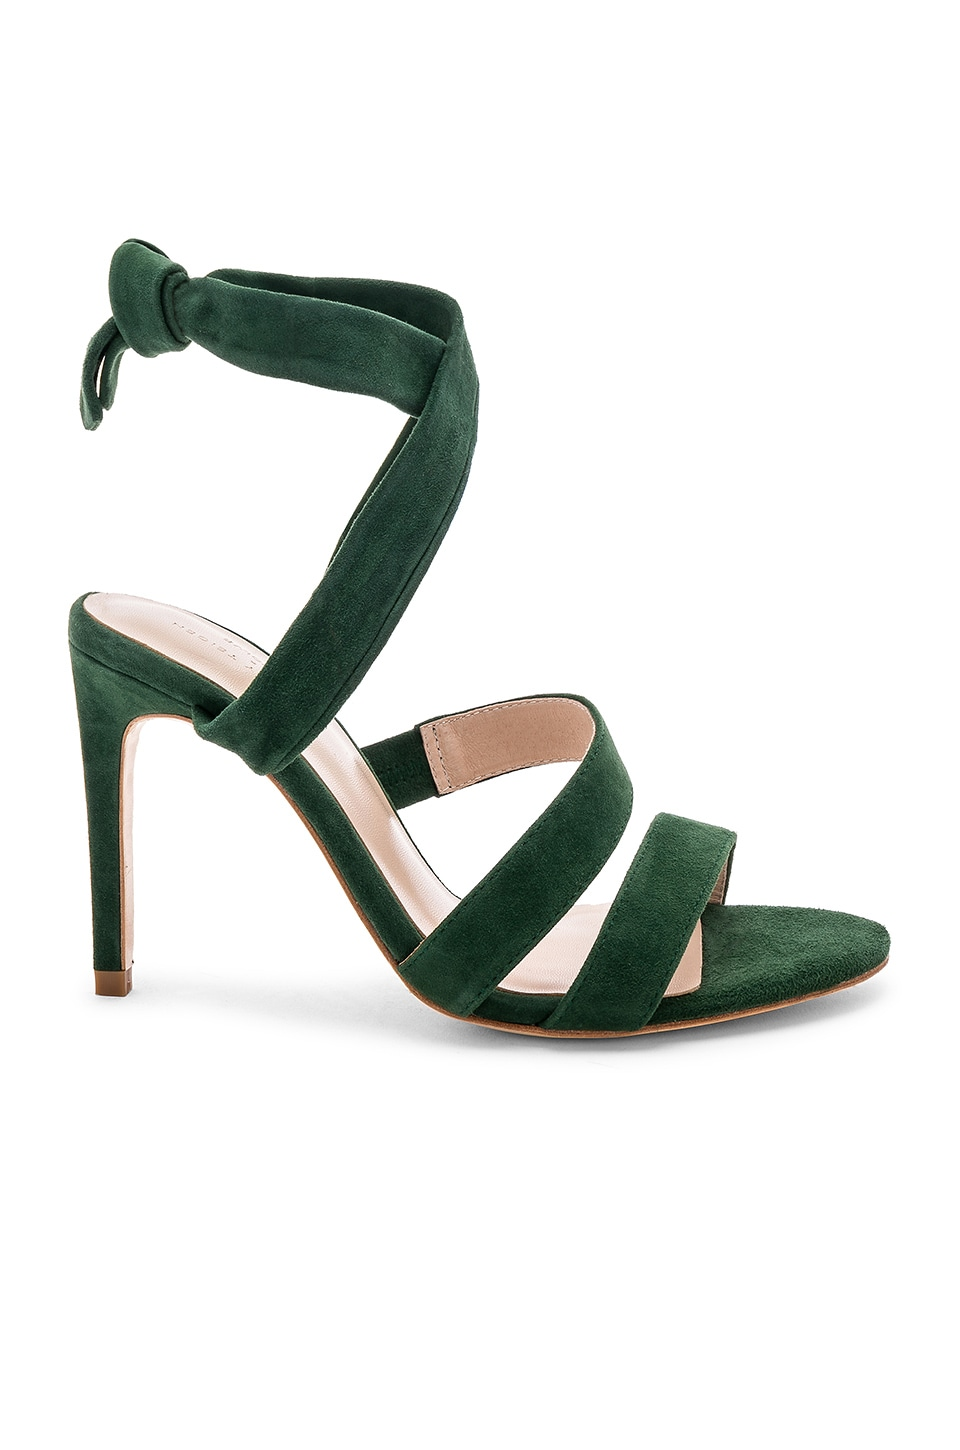 Chrissy Teigen x REVOLVE Stass Heel in Moss Green